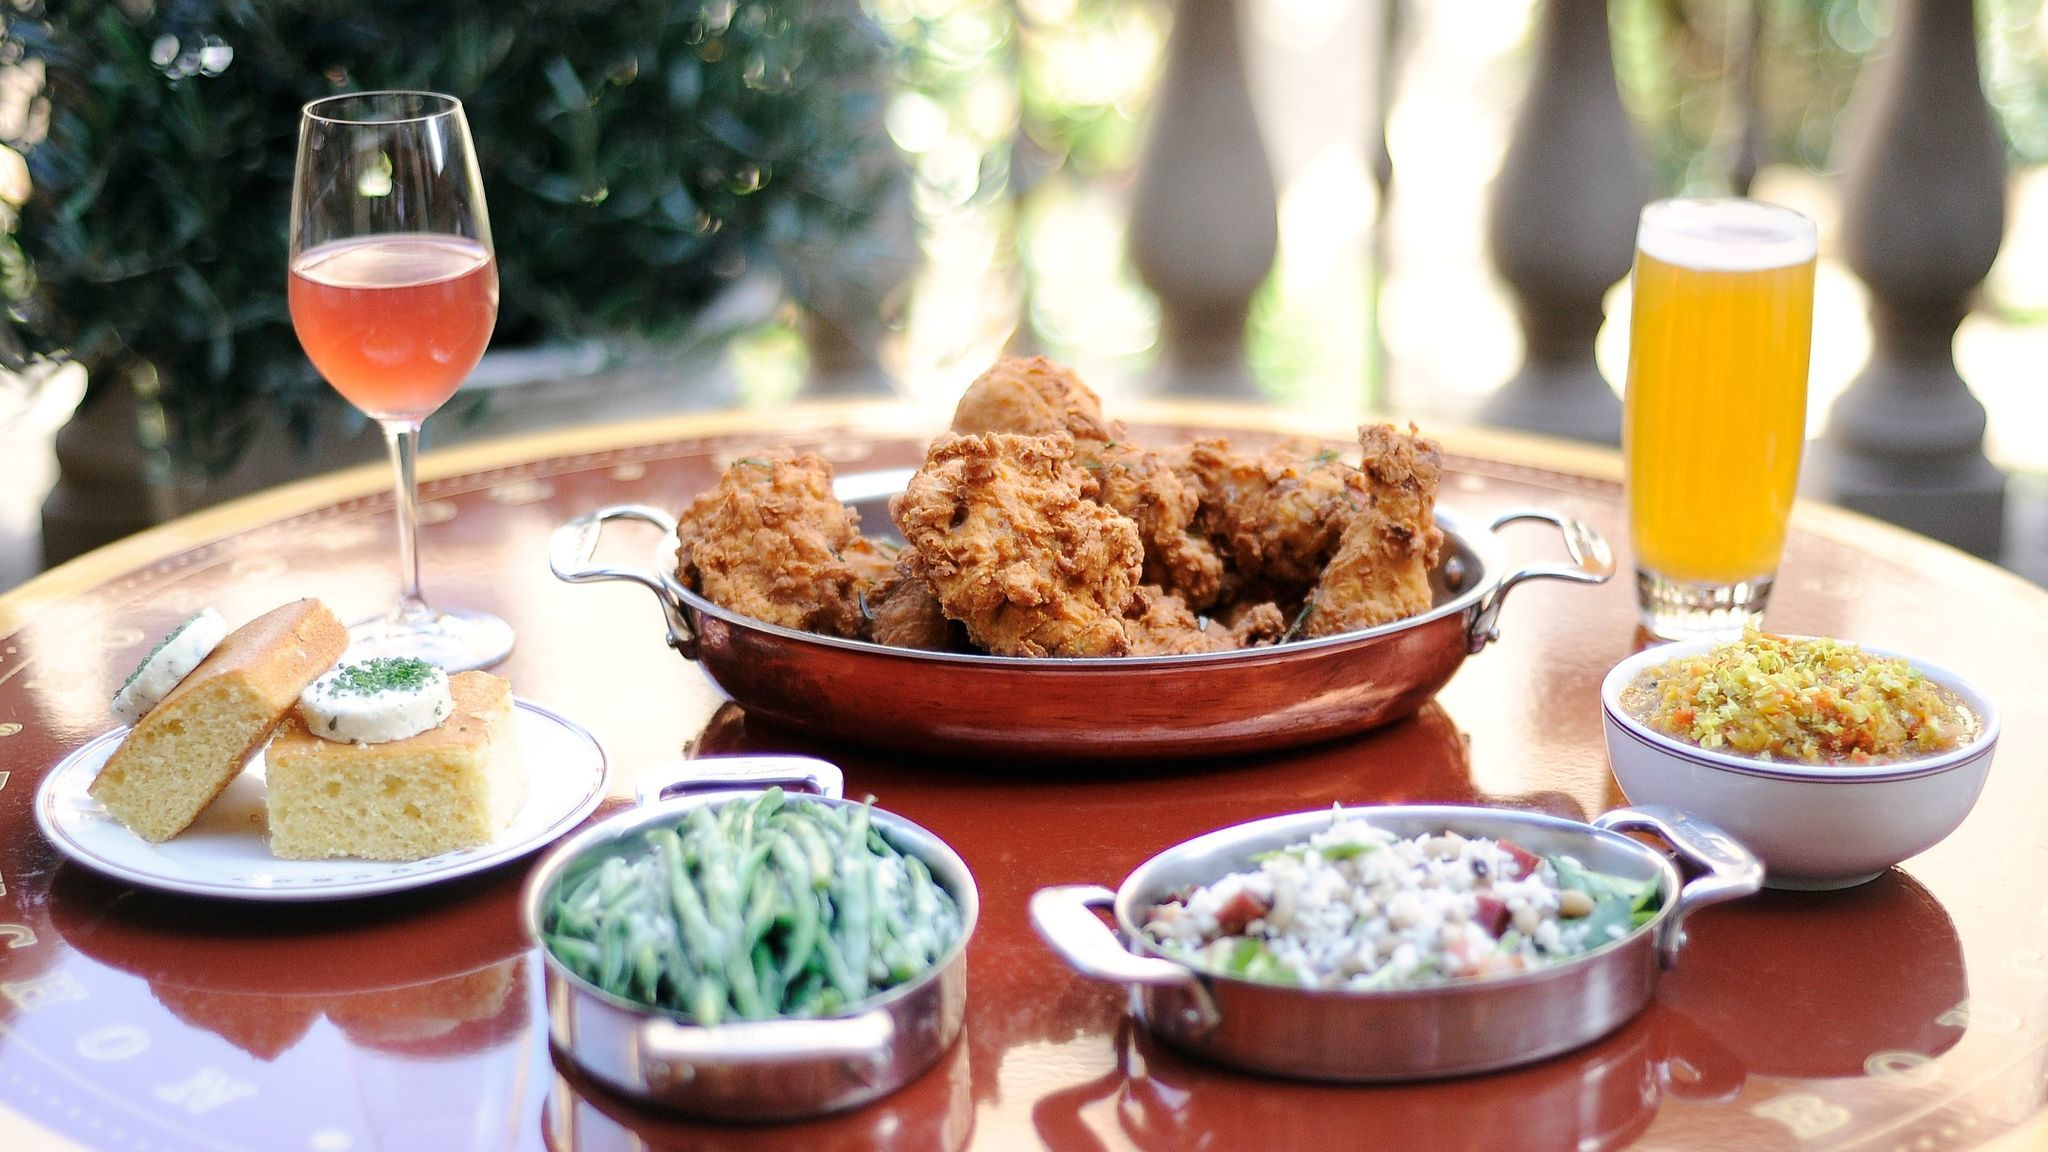 The fried chicken at Bouchon is served with weekly rotating sides.